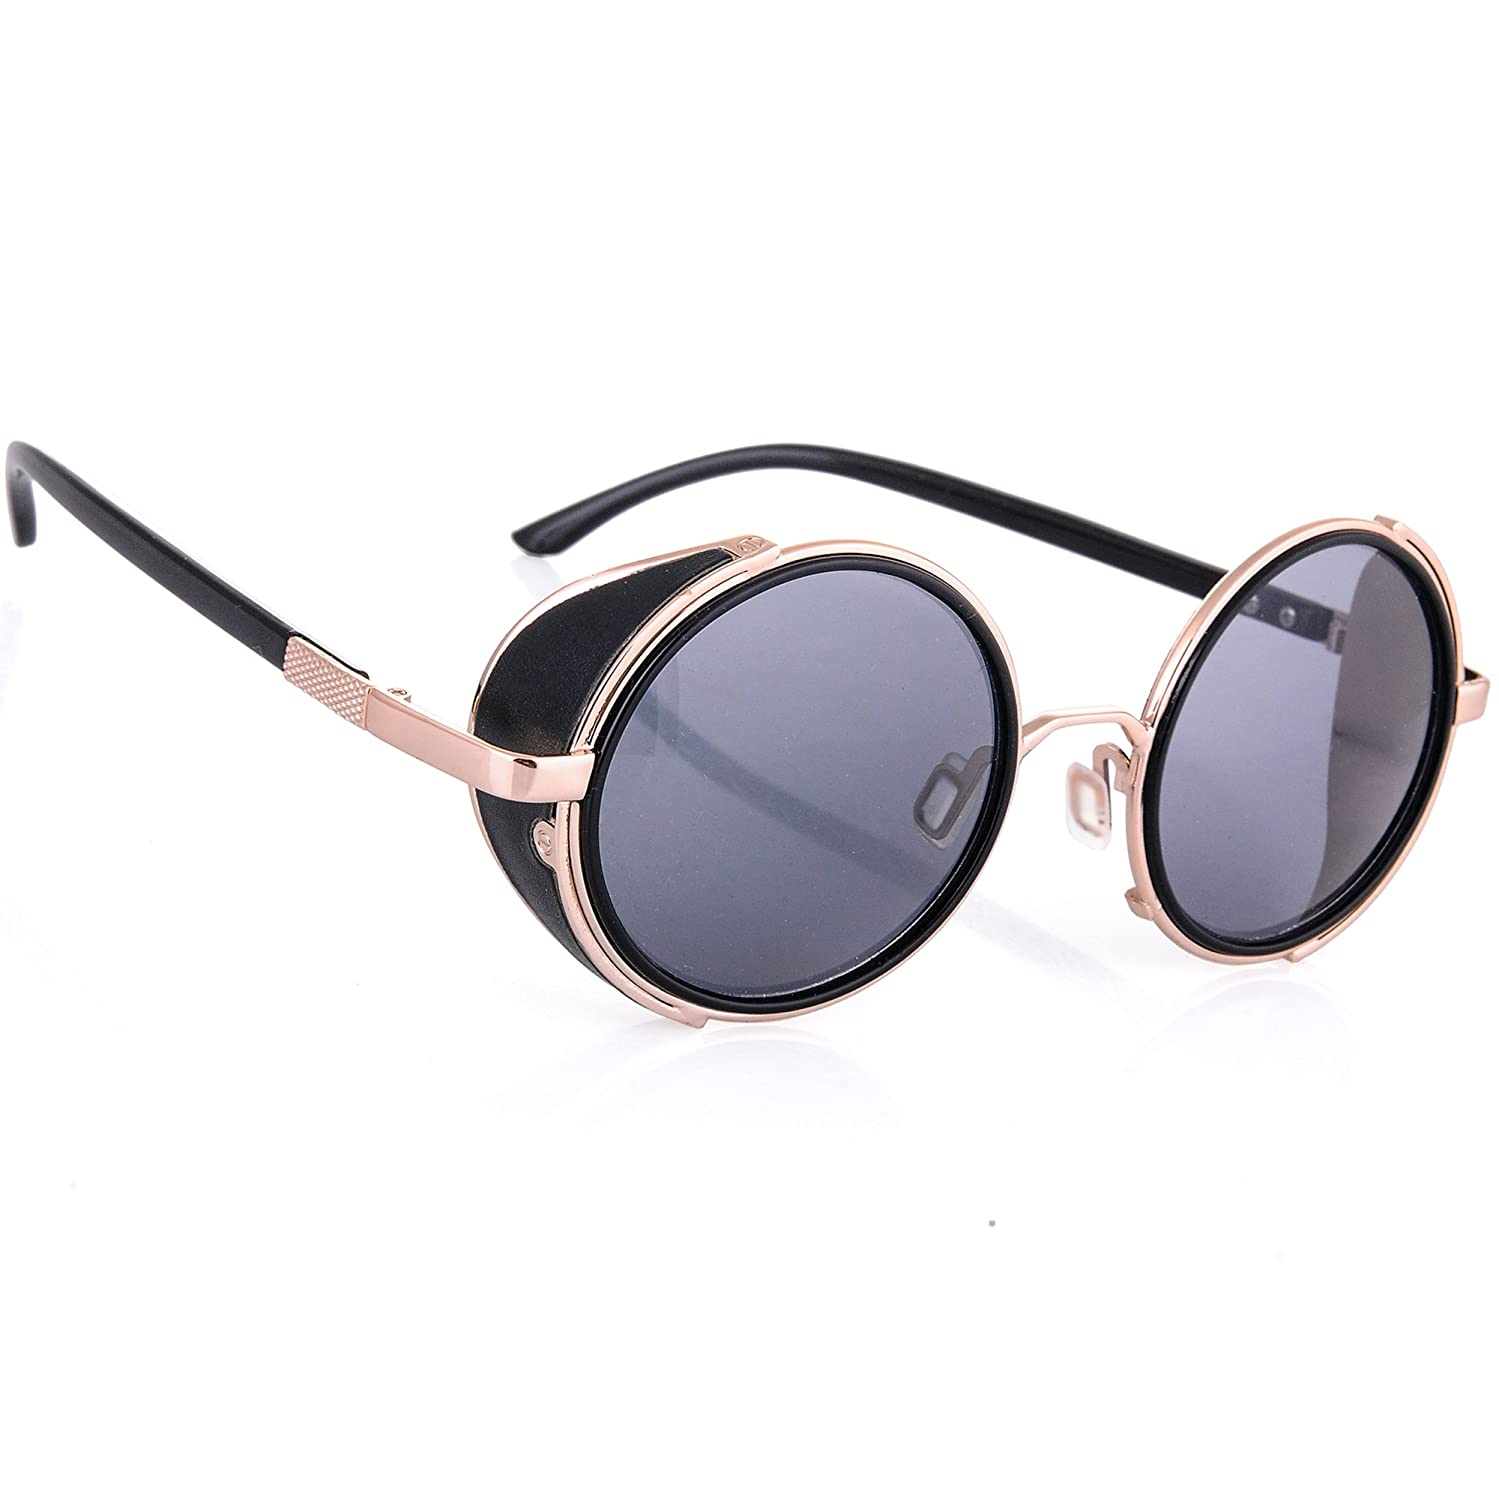 2195da10bb8 Steampunk Sunglasses Mirrored 50s Round Glasses Cyber Goggles Vintage Retro  Hippy Style Men s Women s Original Mirror Lens MFAZ Morefaz Ltd  (Black Gold)  ...